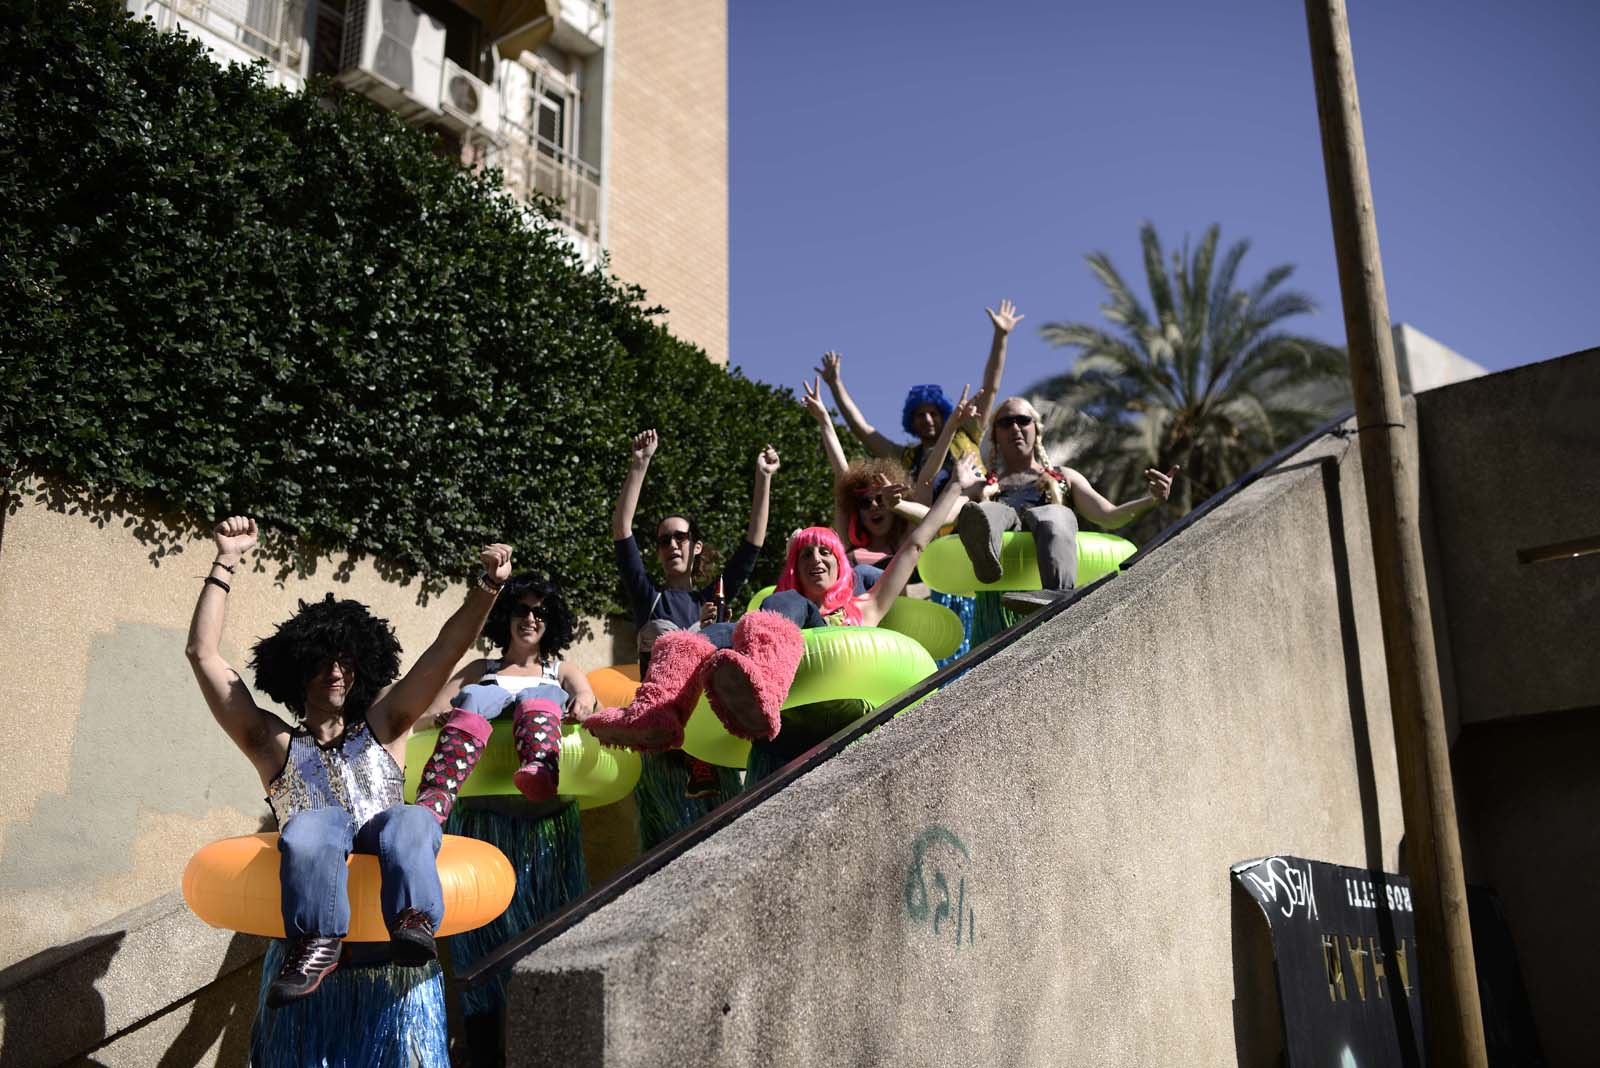 Purim in Tel Aviv. Photo by Tomer Neuberg/FLASH90